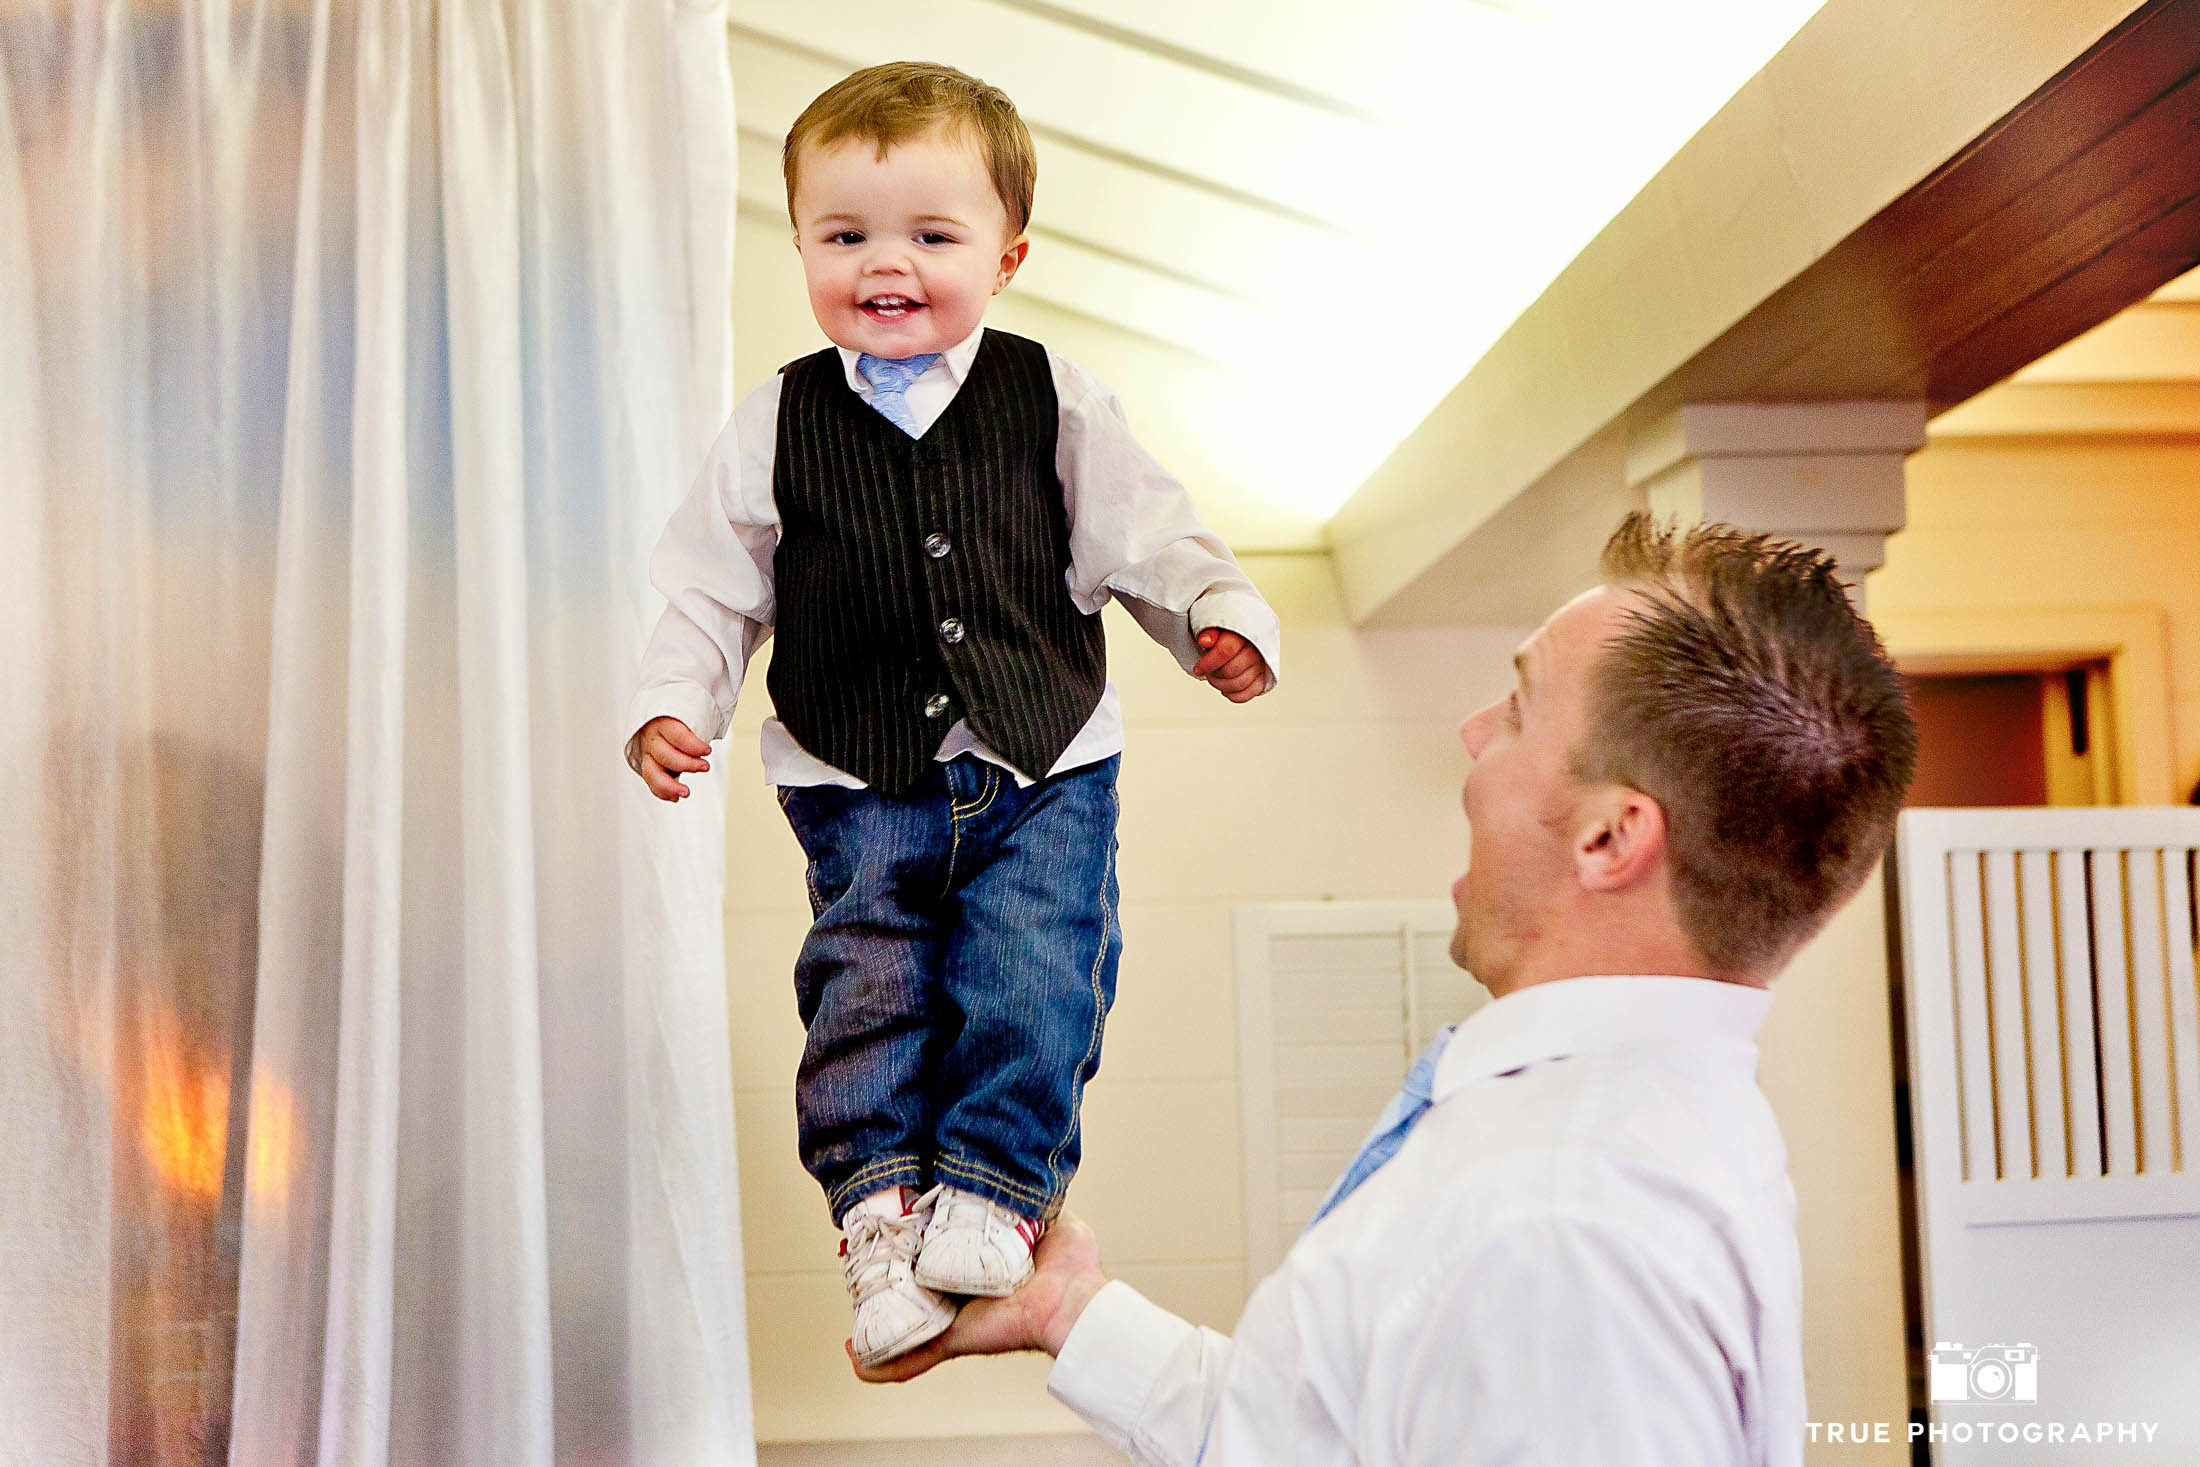 Funny photo of Groom holding baby with one hand